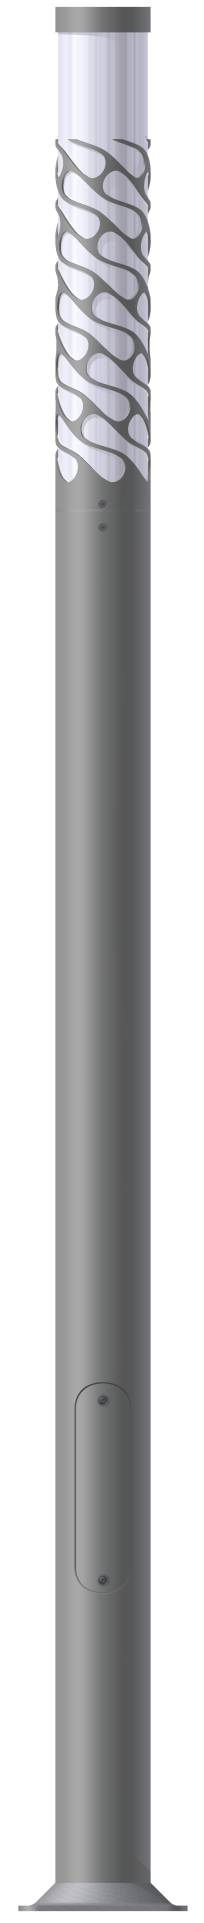 COLONNE LED KARIN DECOR 3600 LED